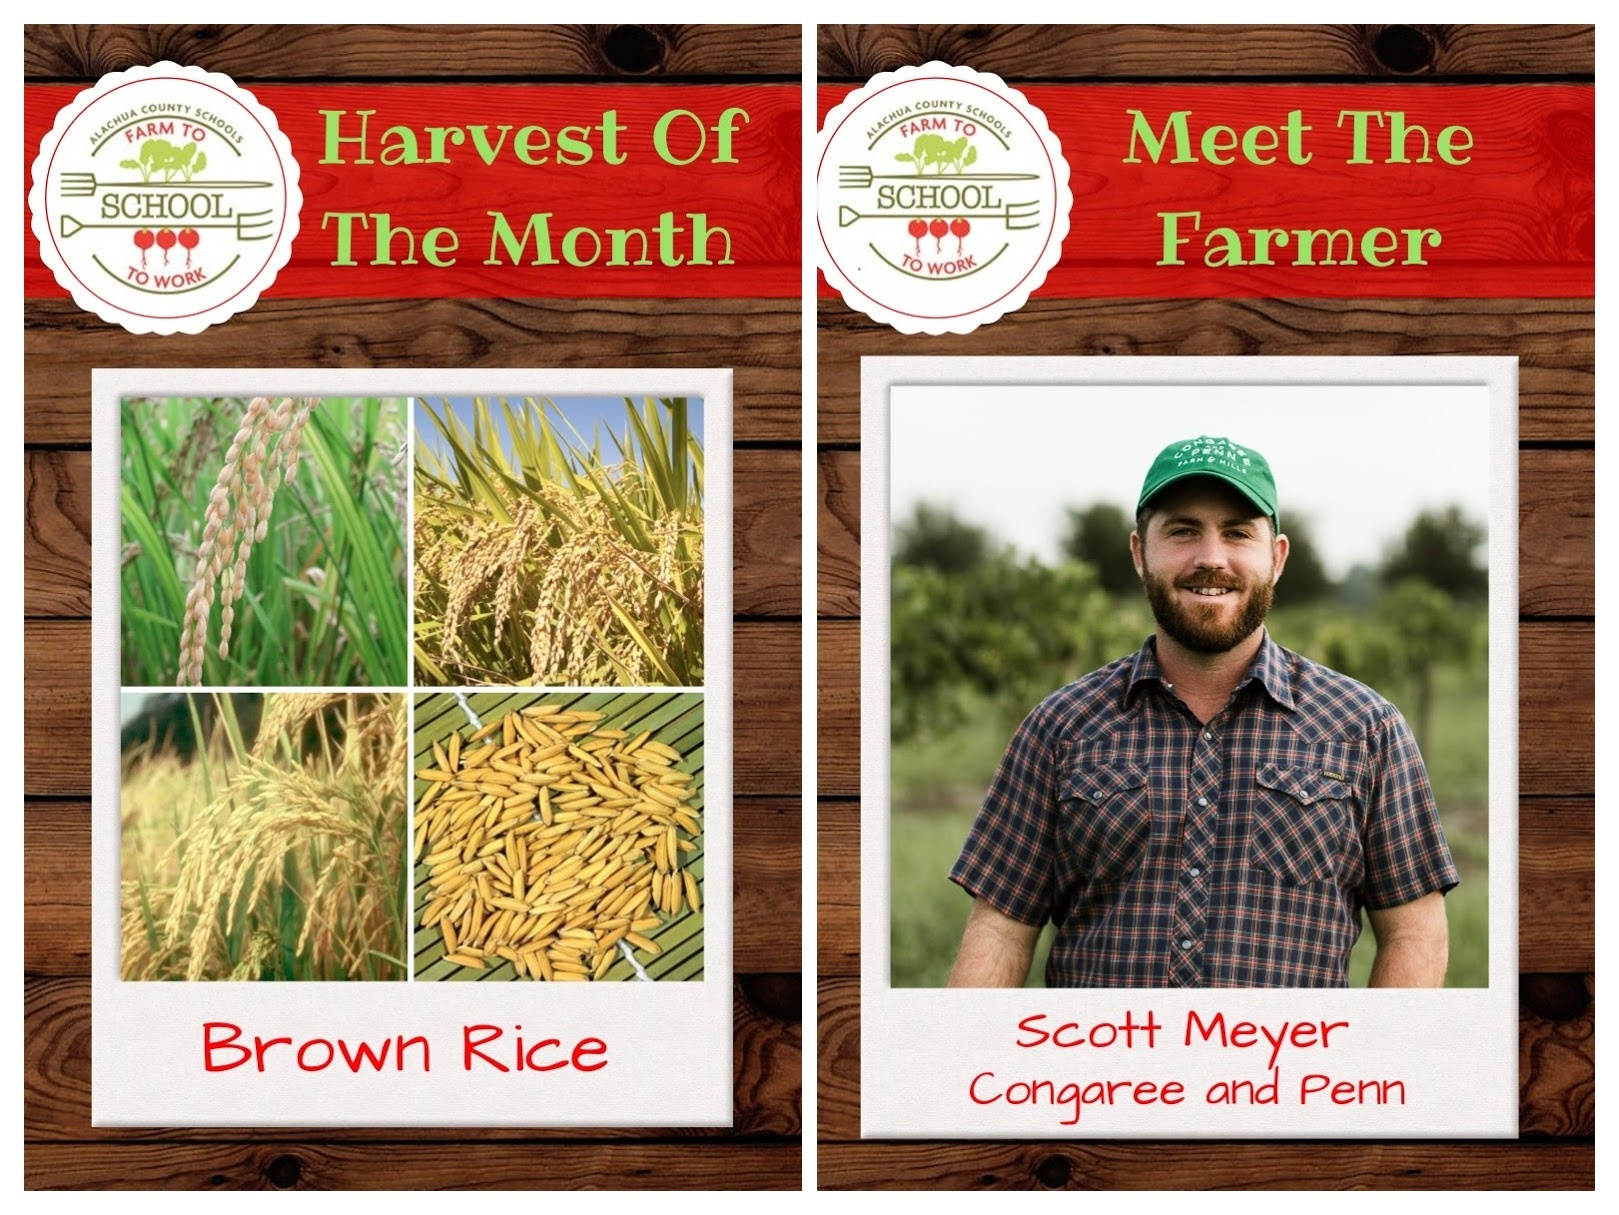 JANUARY HARVEST OF THE MONTH: Brown Rice